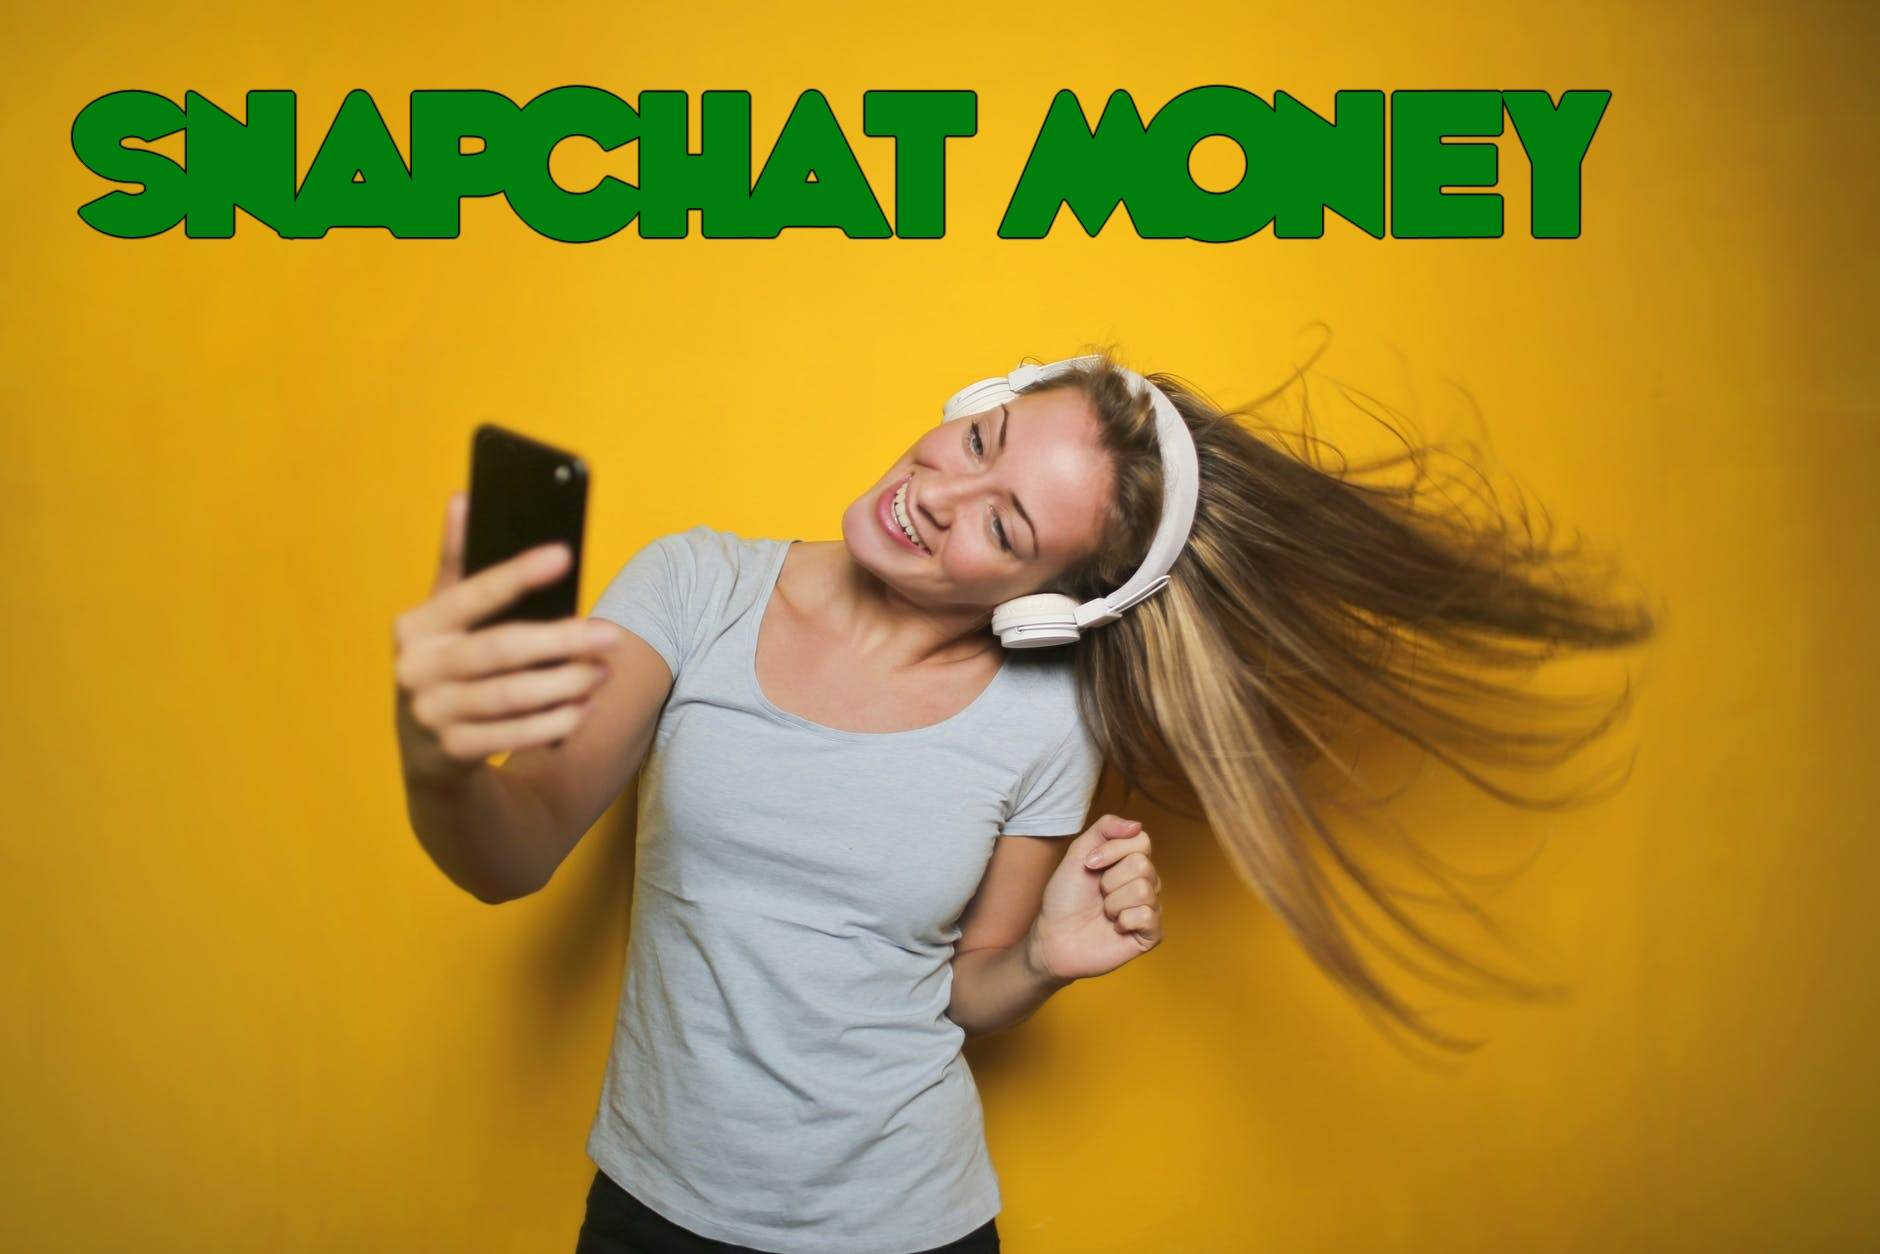 Snapchat money making tips for cam girls.